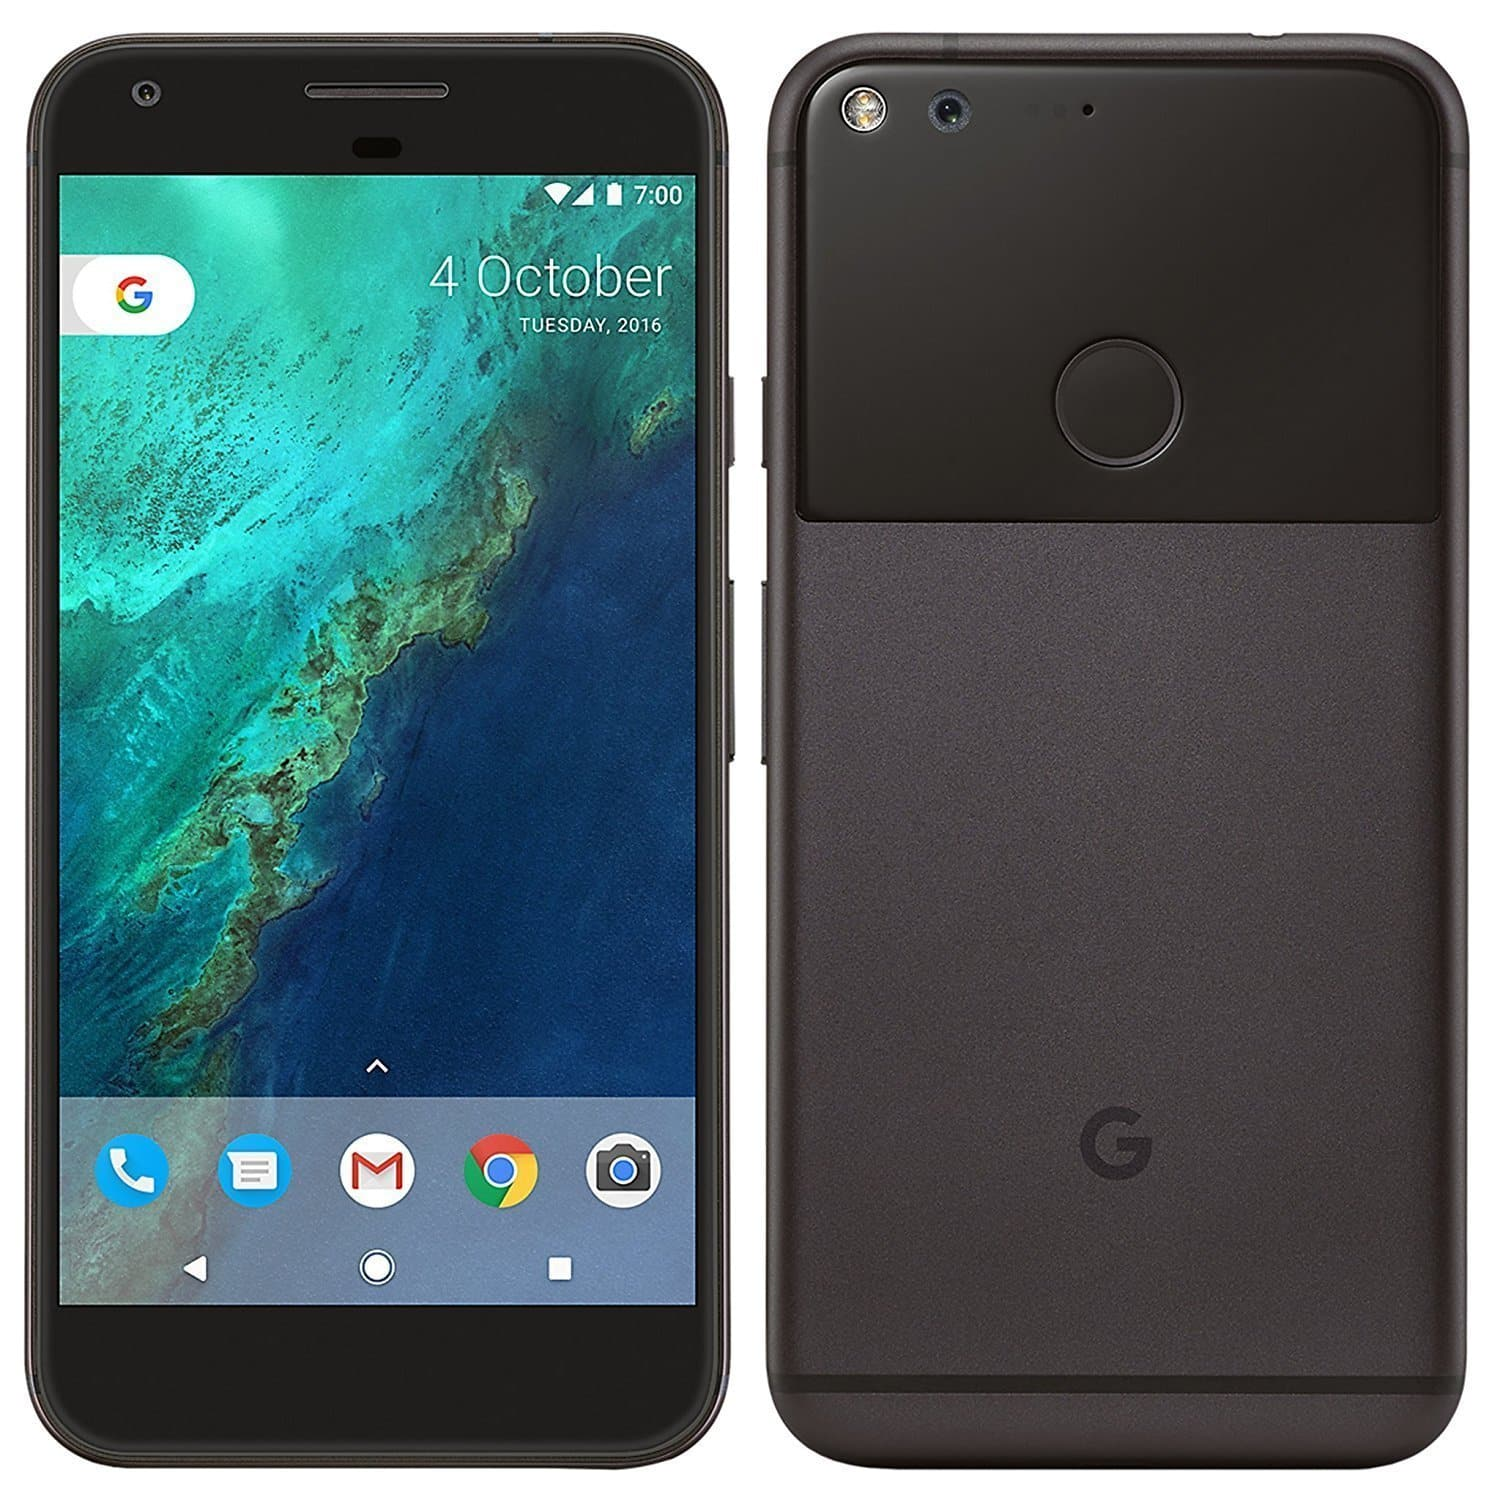 Google Pixel (original, not 2) 32GB Unlocked New $370 @ B&H $369.99